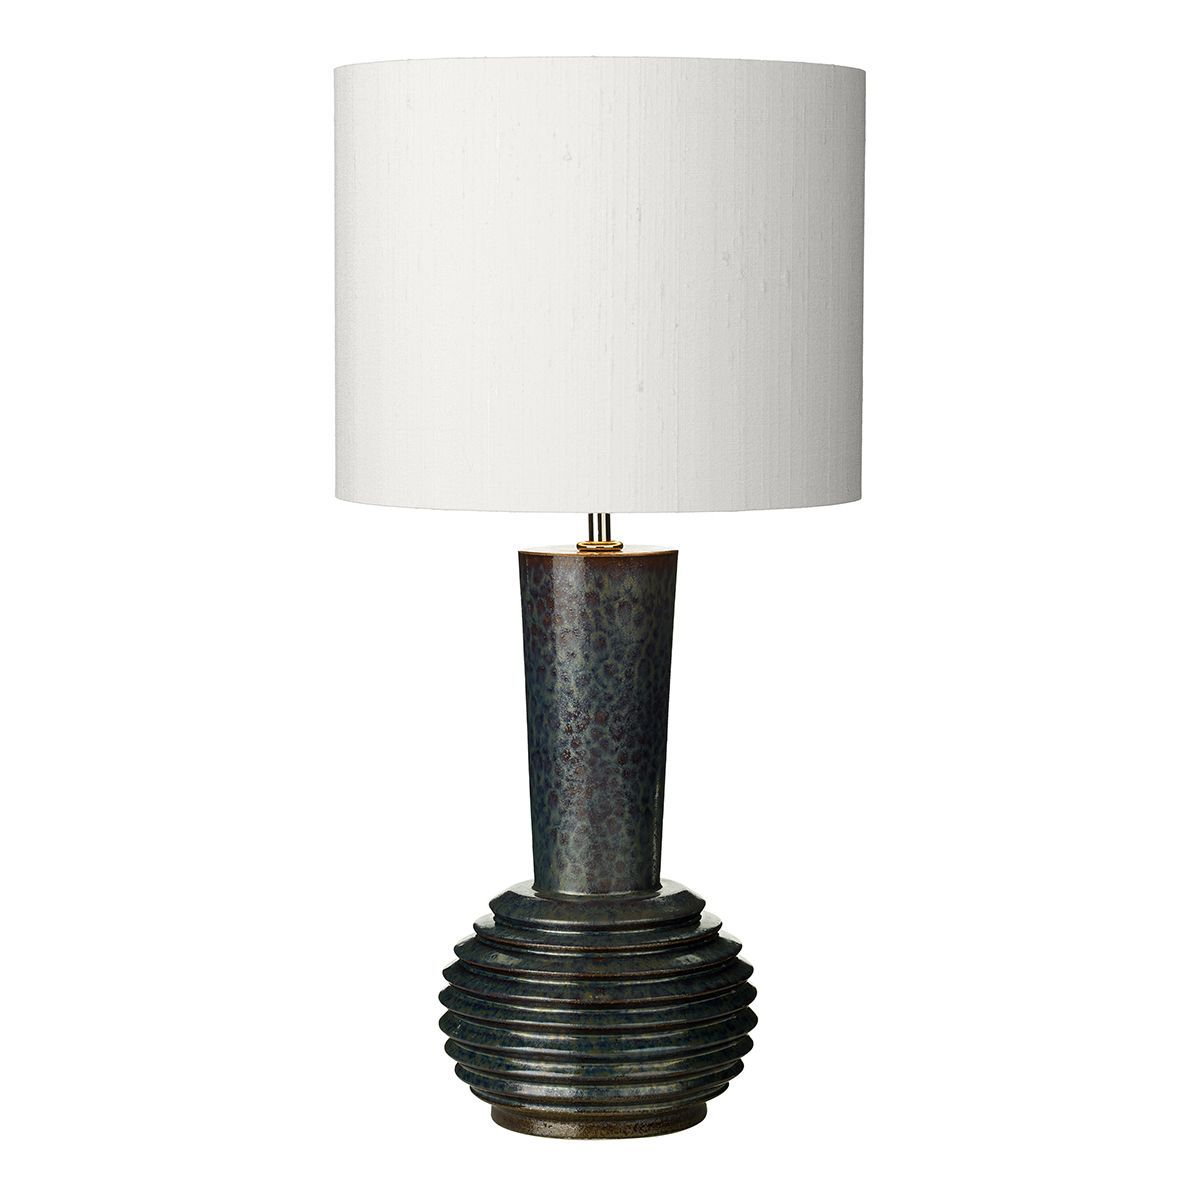 liquid table lamp ribbed black oil finish small base only hand made 7 10 day delivery. Black Bedroom Furniture Sets. Home Design Ideas